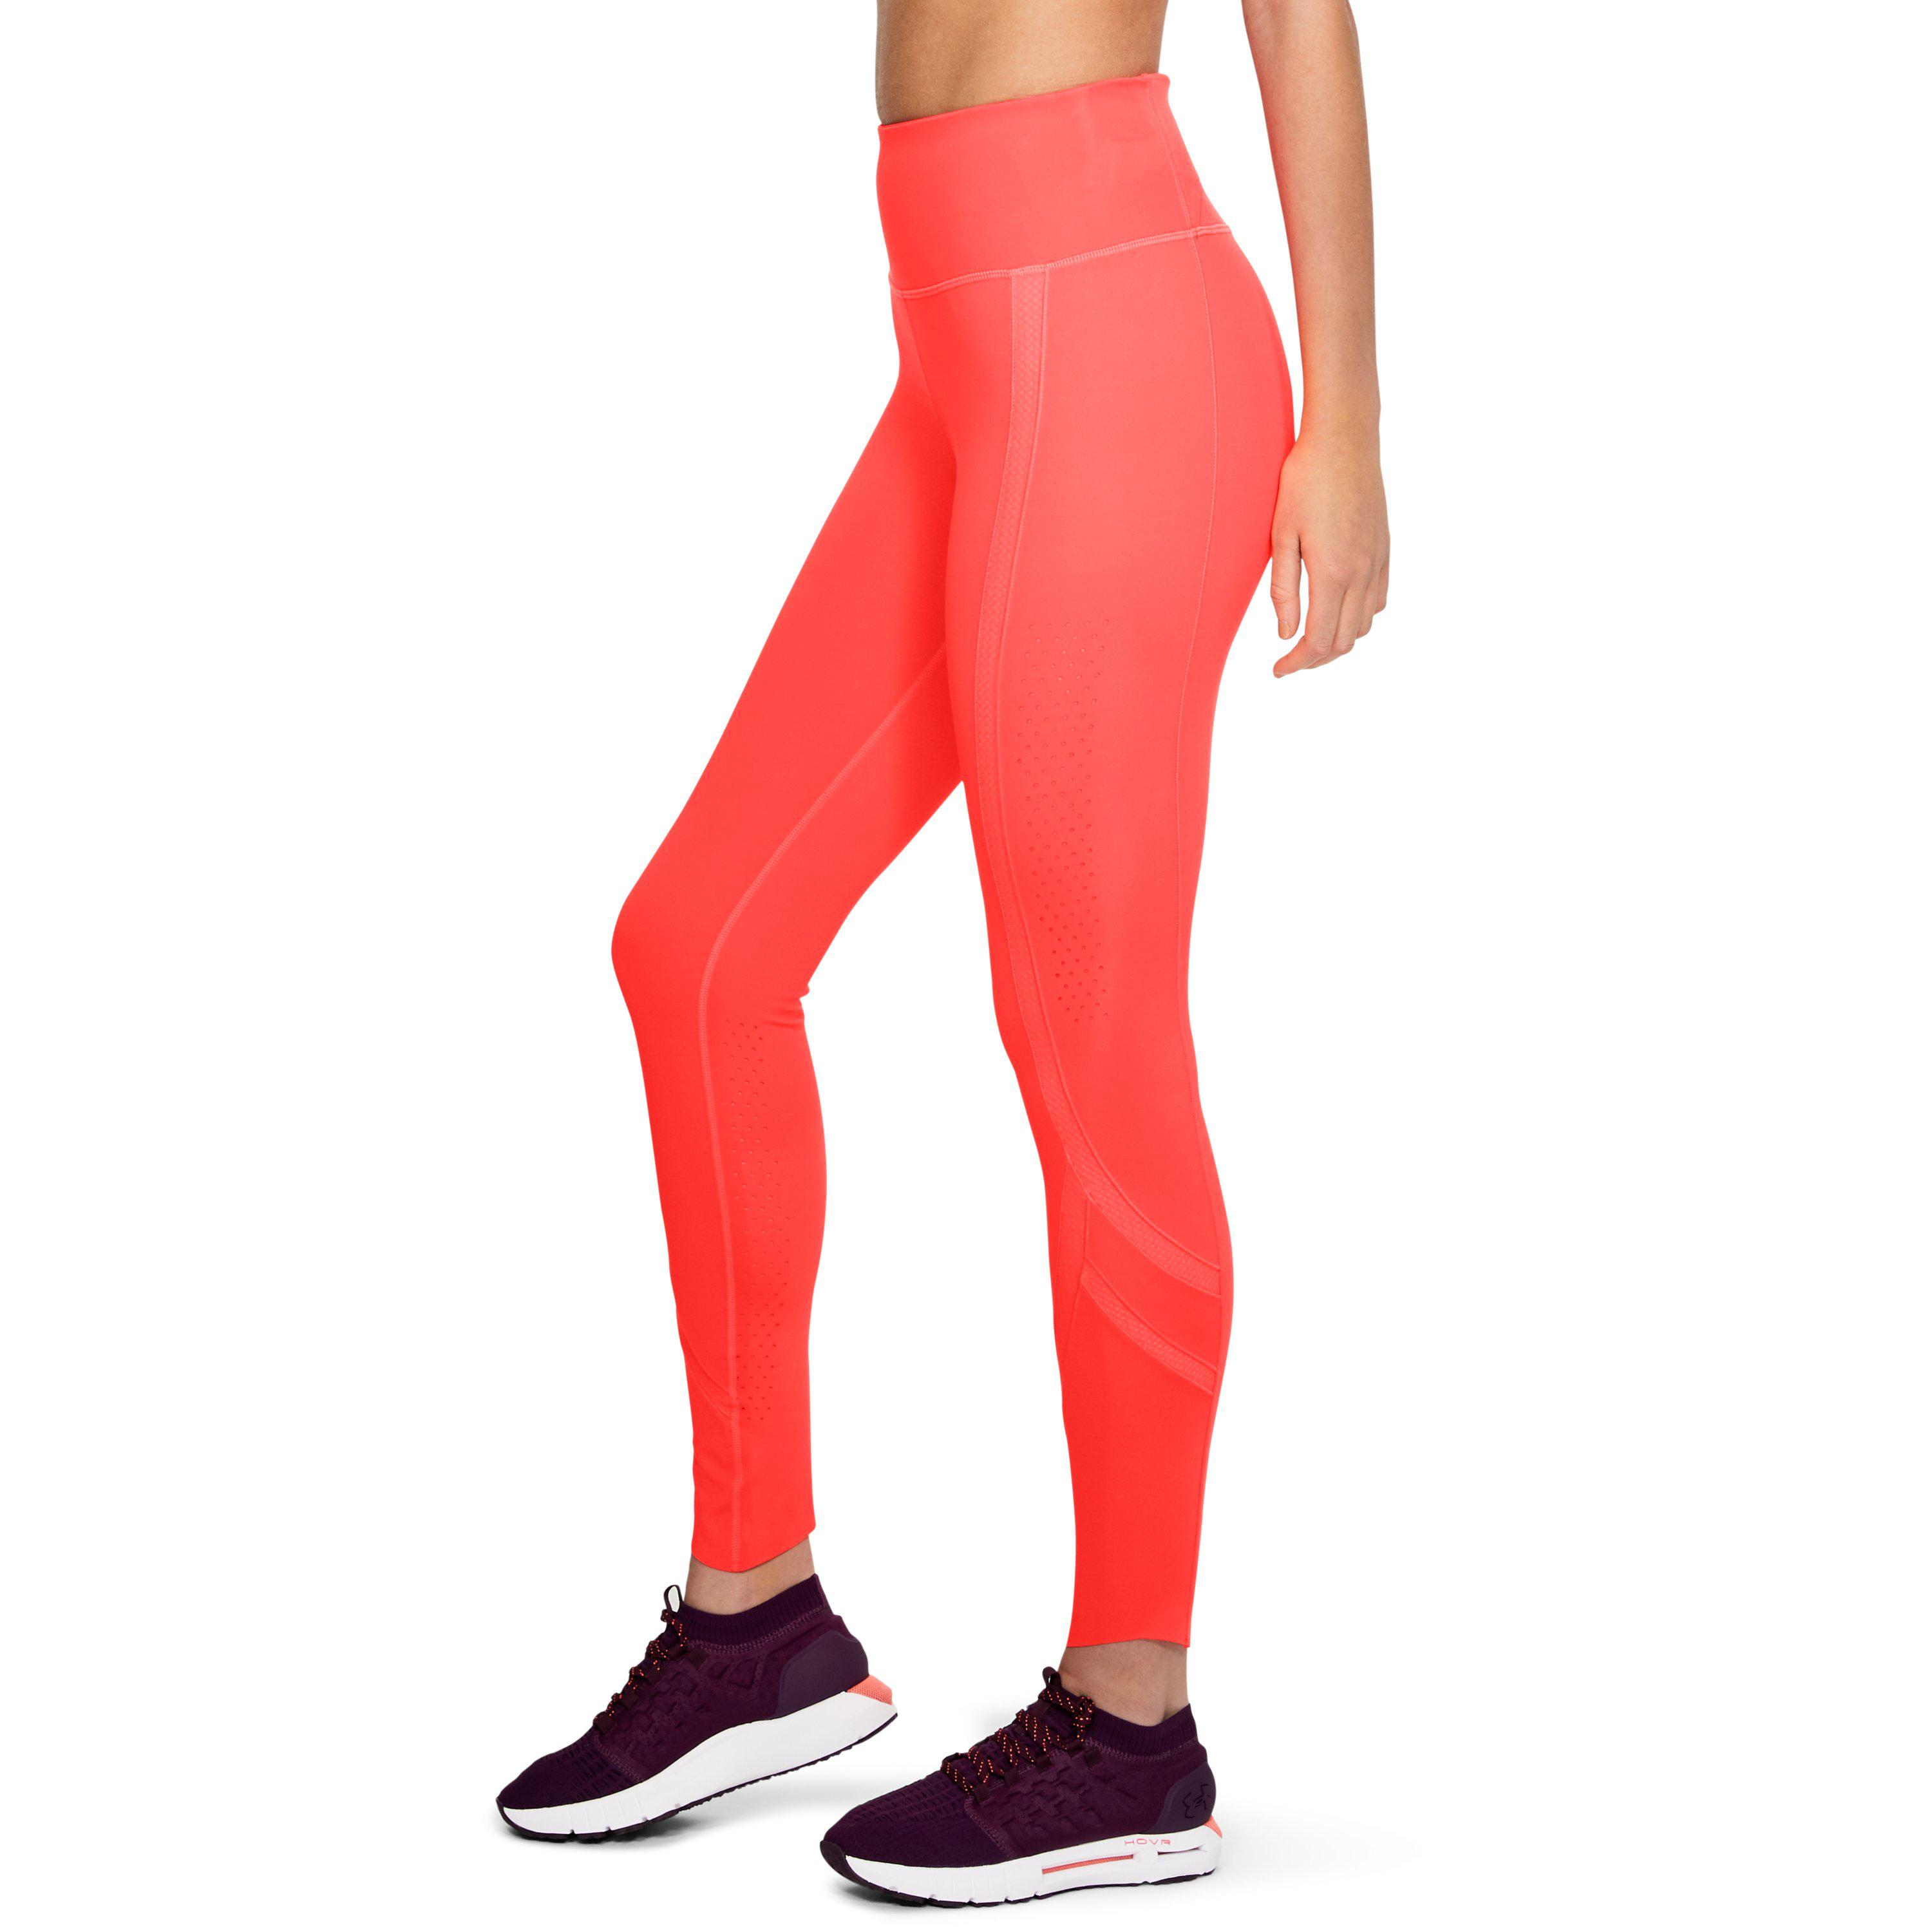 NEW Women/'s UNDER ARMOUR Black Coral Fitted Leggings Athletic Pants Cotton Blend